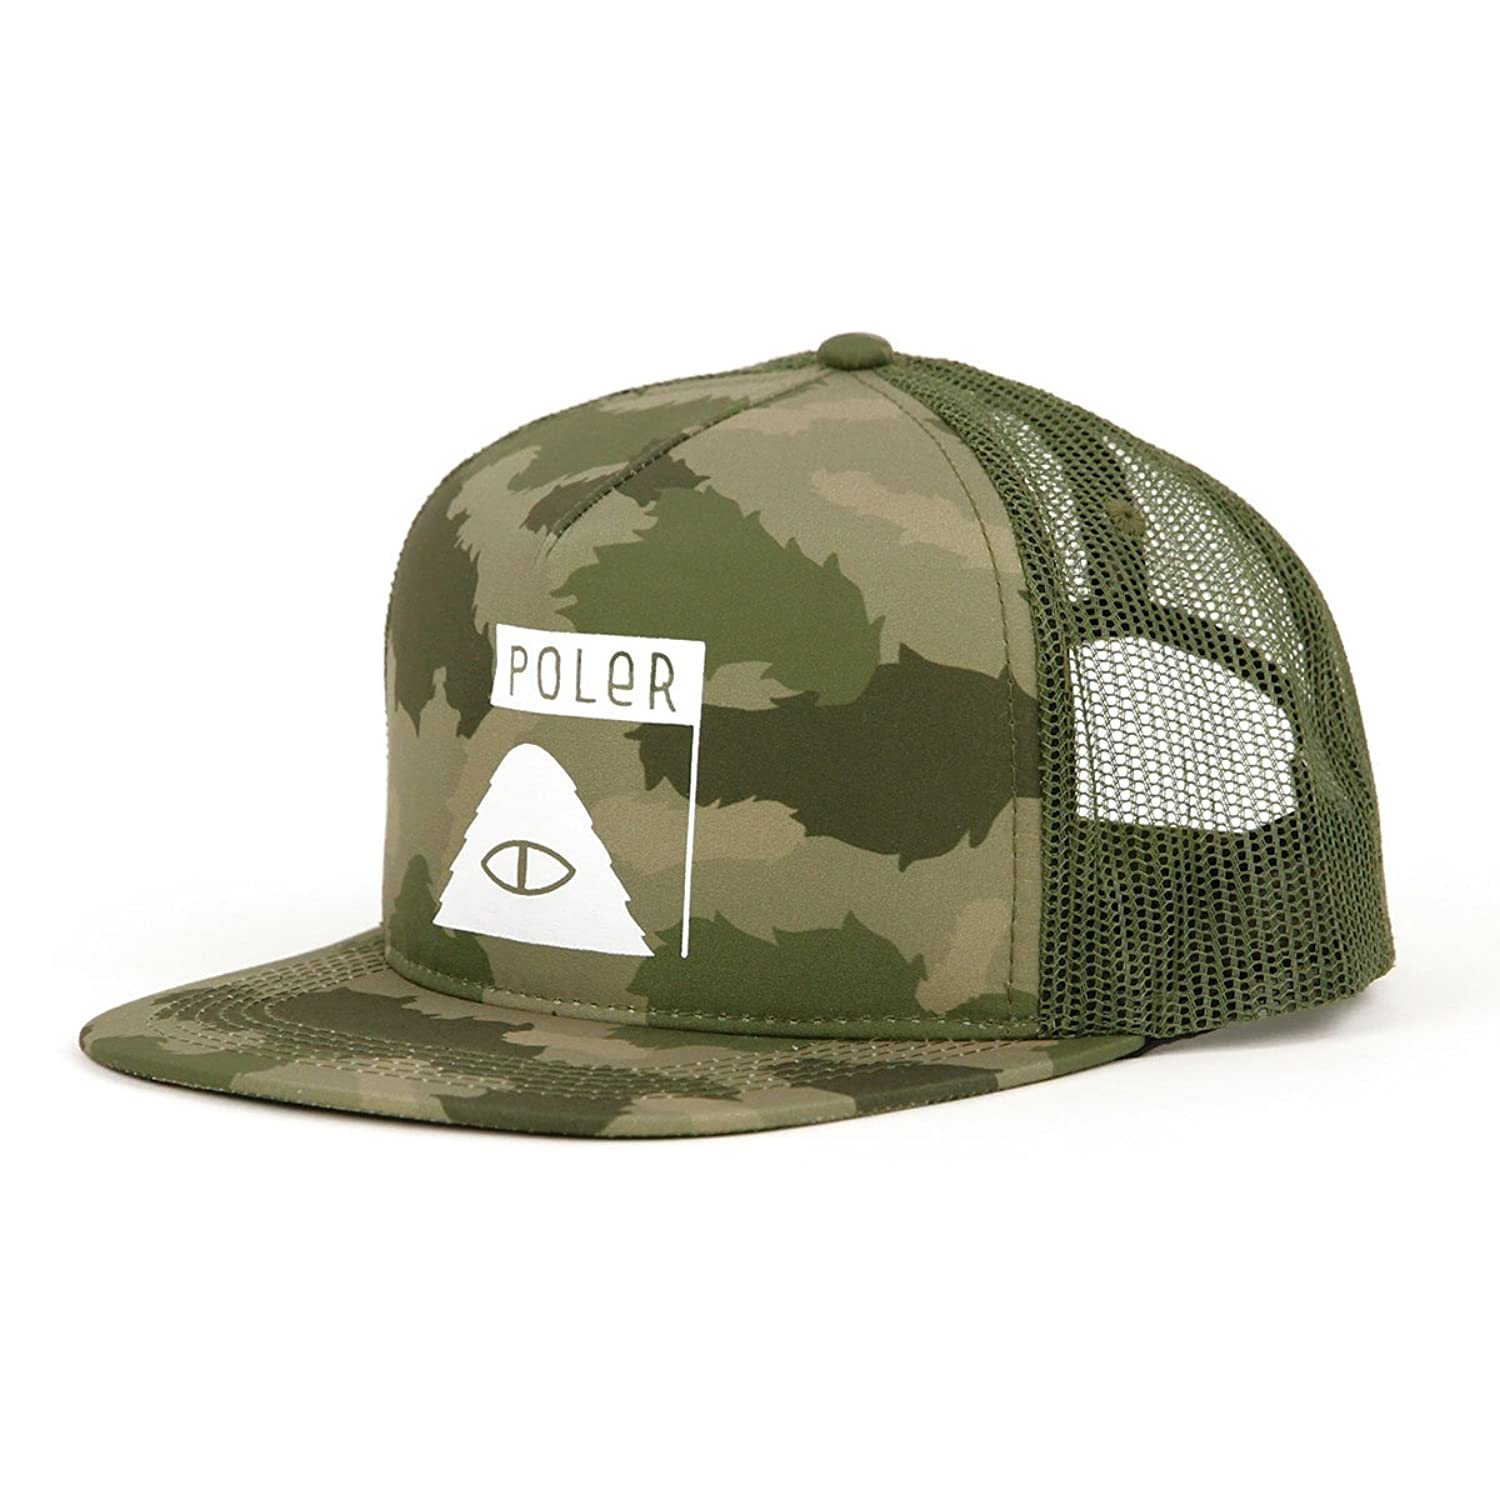 POLER SUMMIT TRUCKER MESH CAP